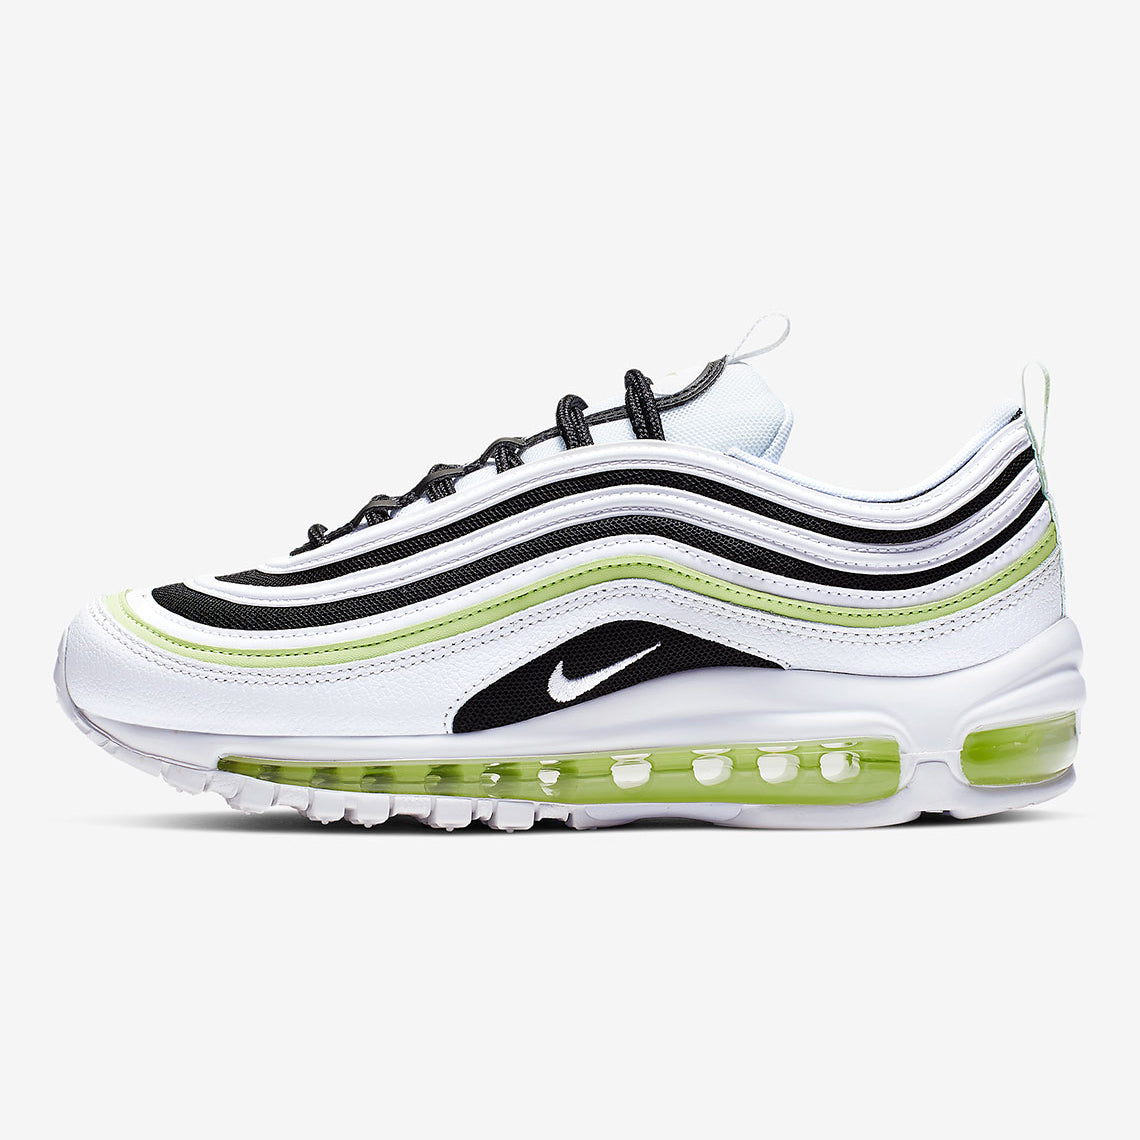 shop for best fancy clearance online 2020 wmns air max 97